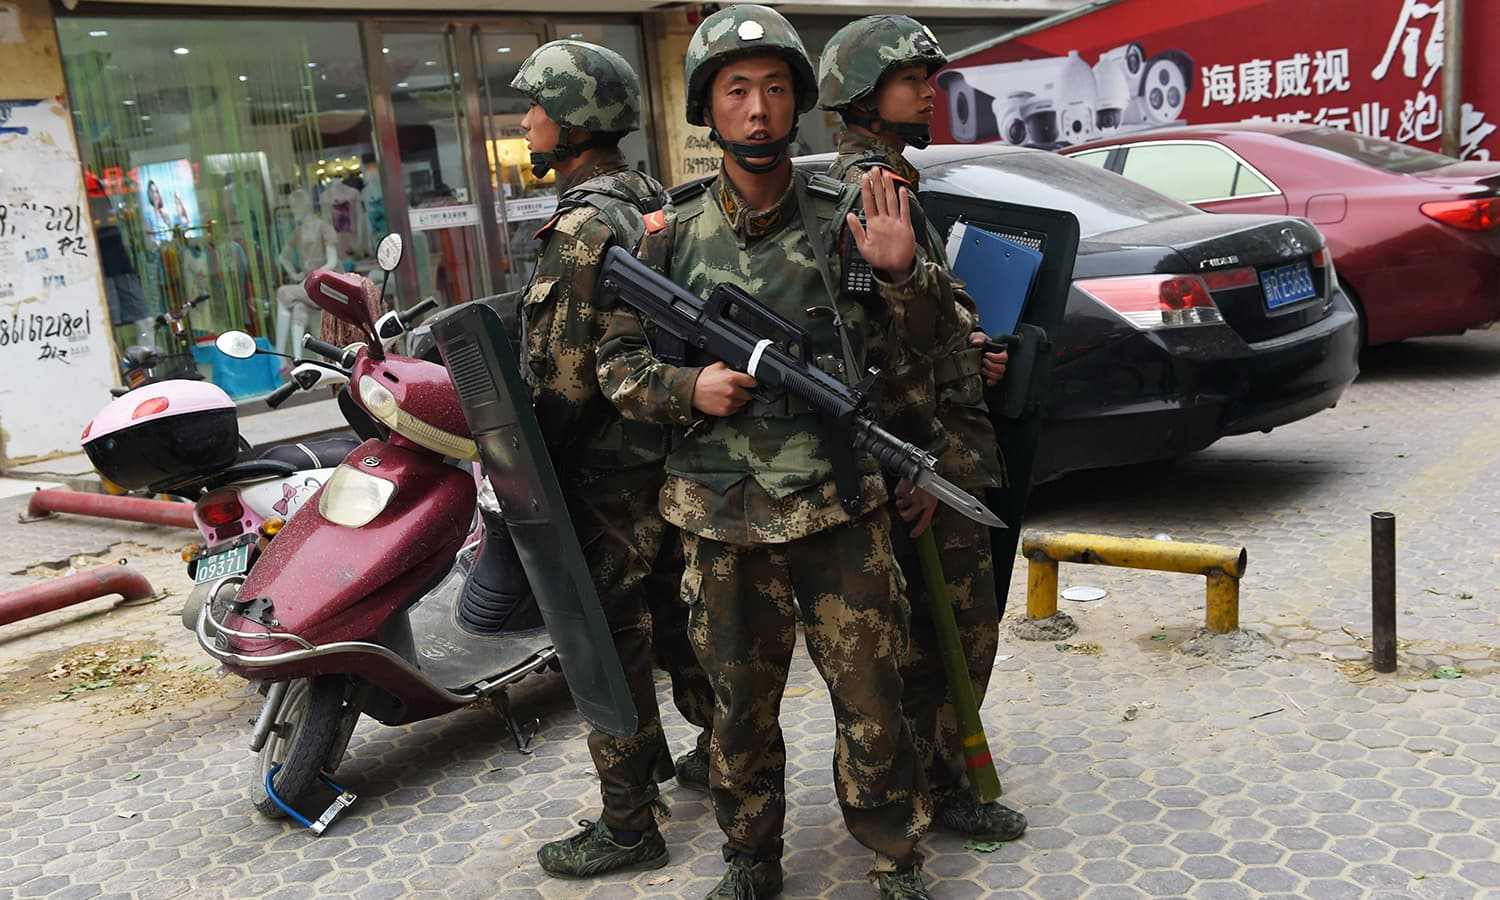 Paramilitary police officers stand guard outside a shopping mall in Hotan in China's western Xinjiang region in this April 16, 2015 photo. — AFP